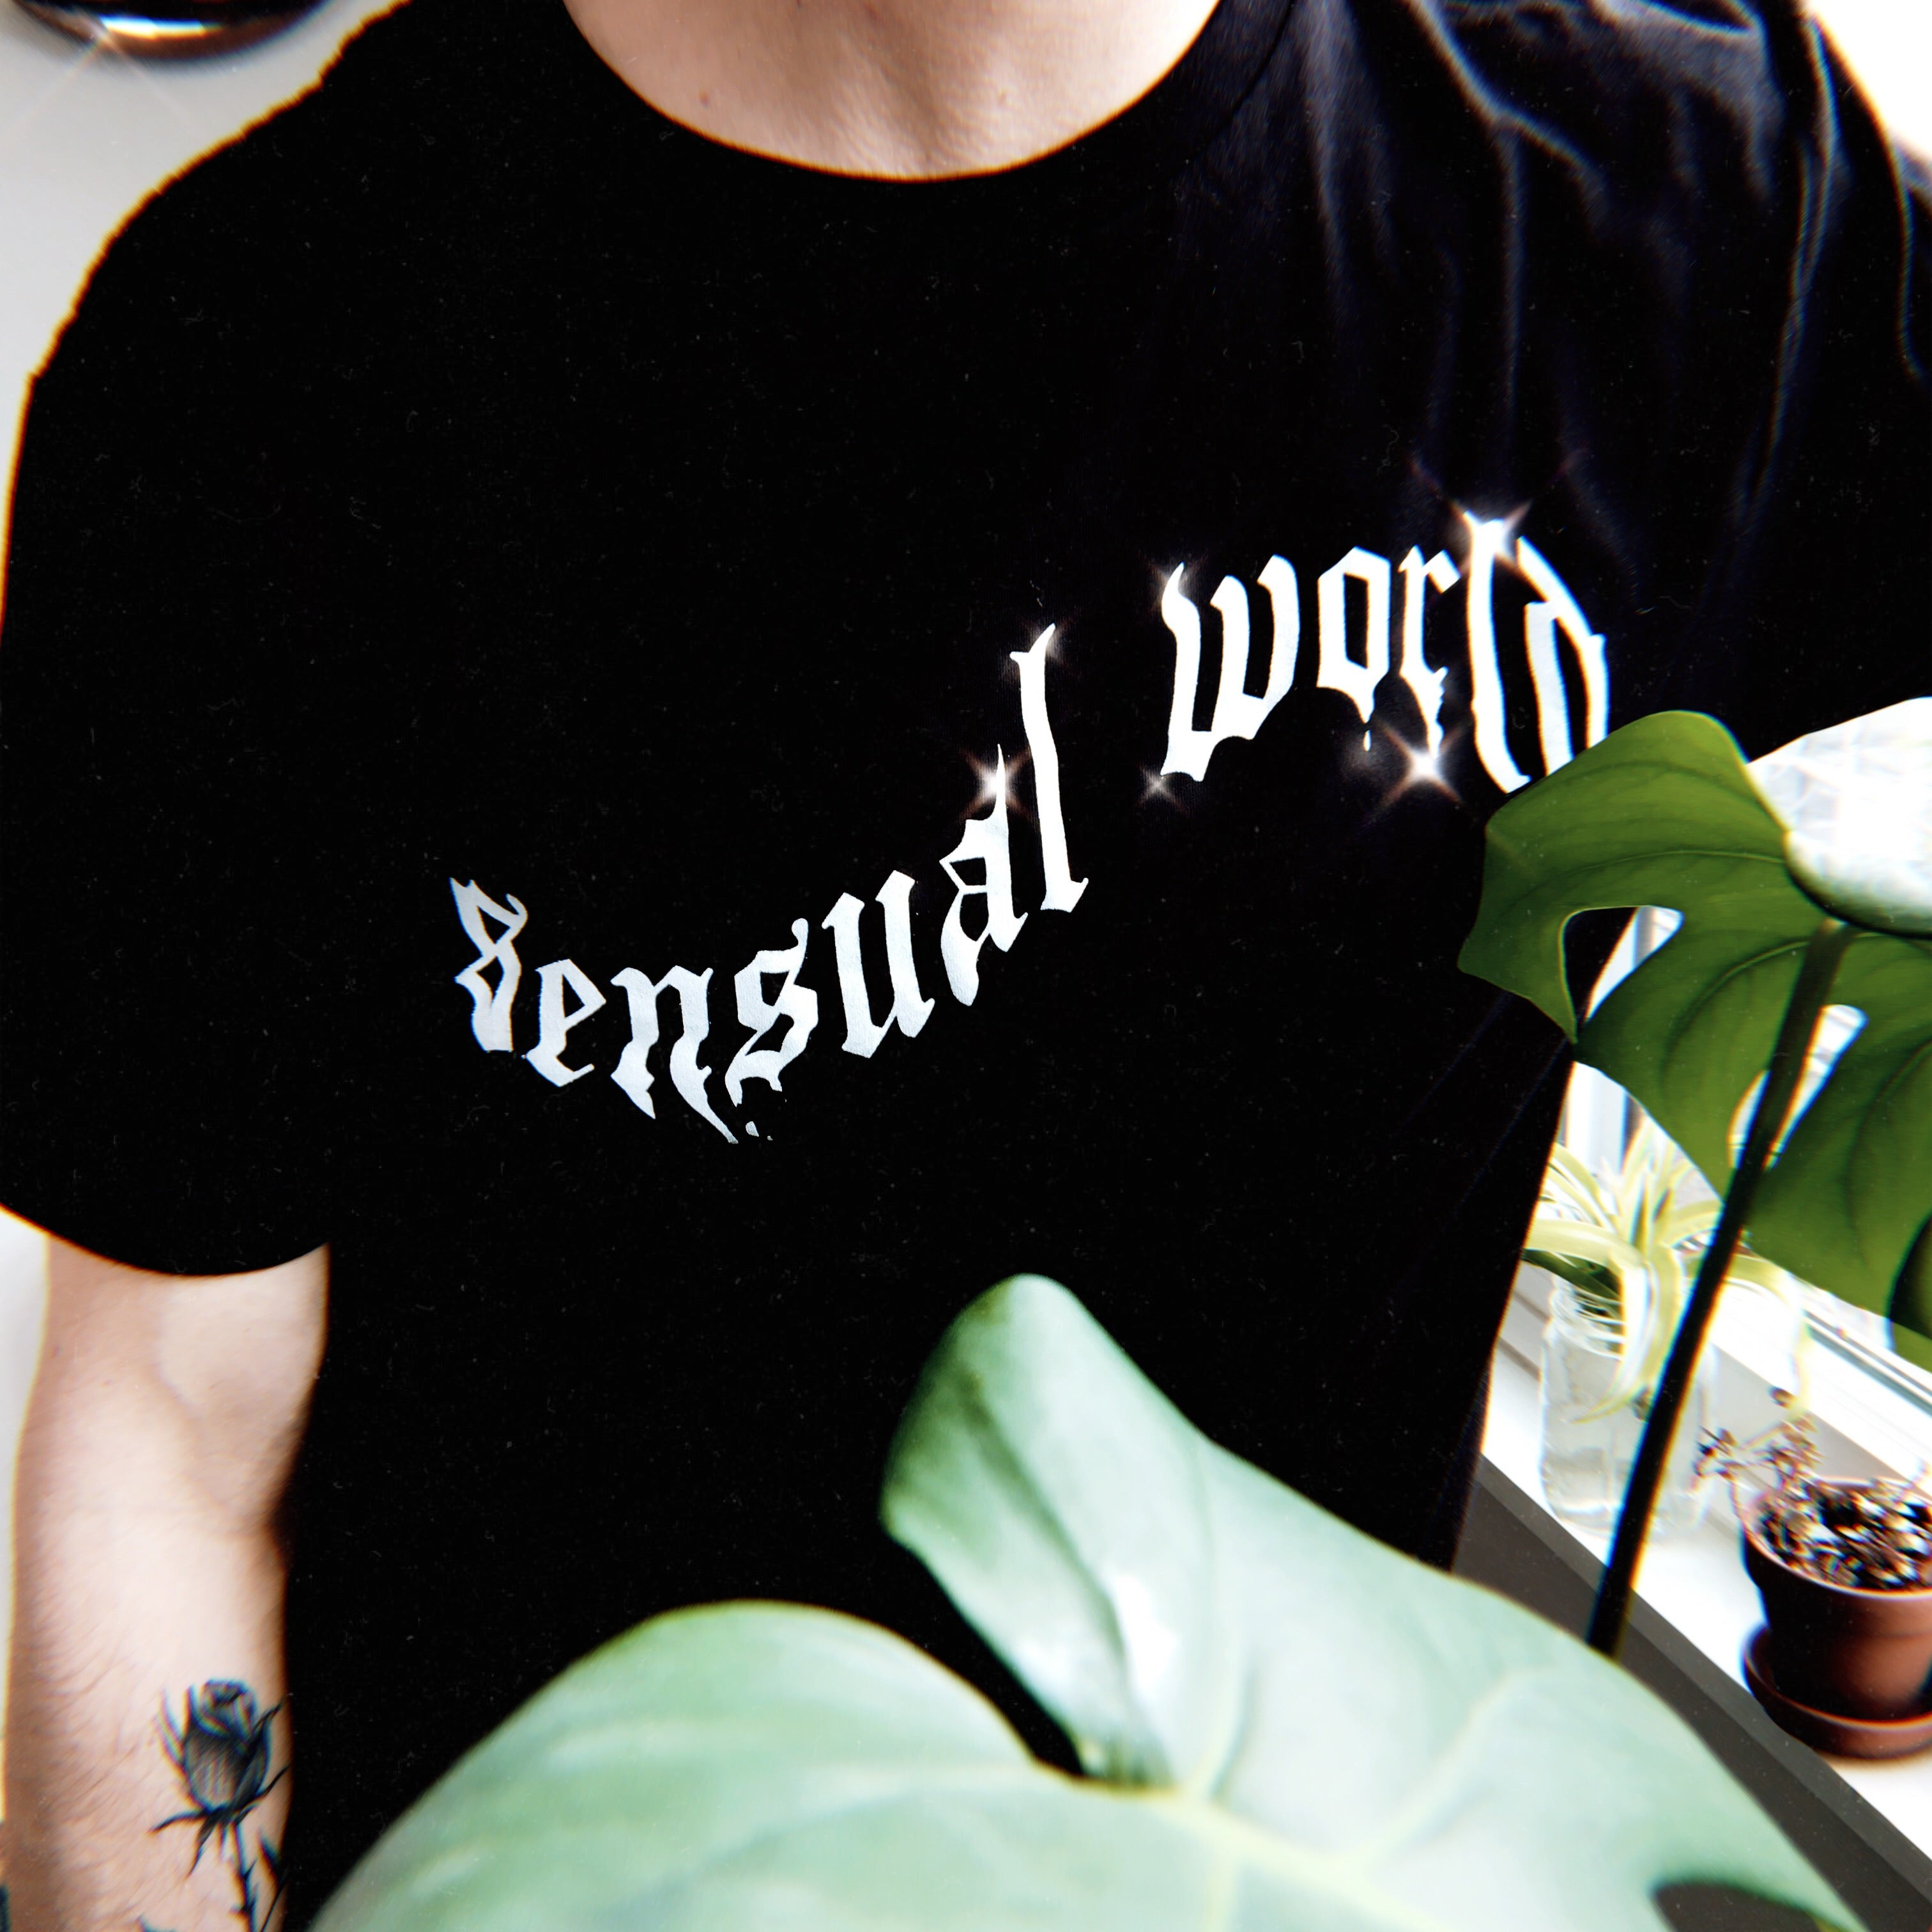 Sensual World T-Shirt